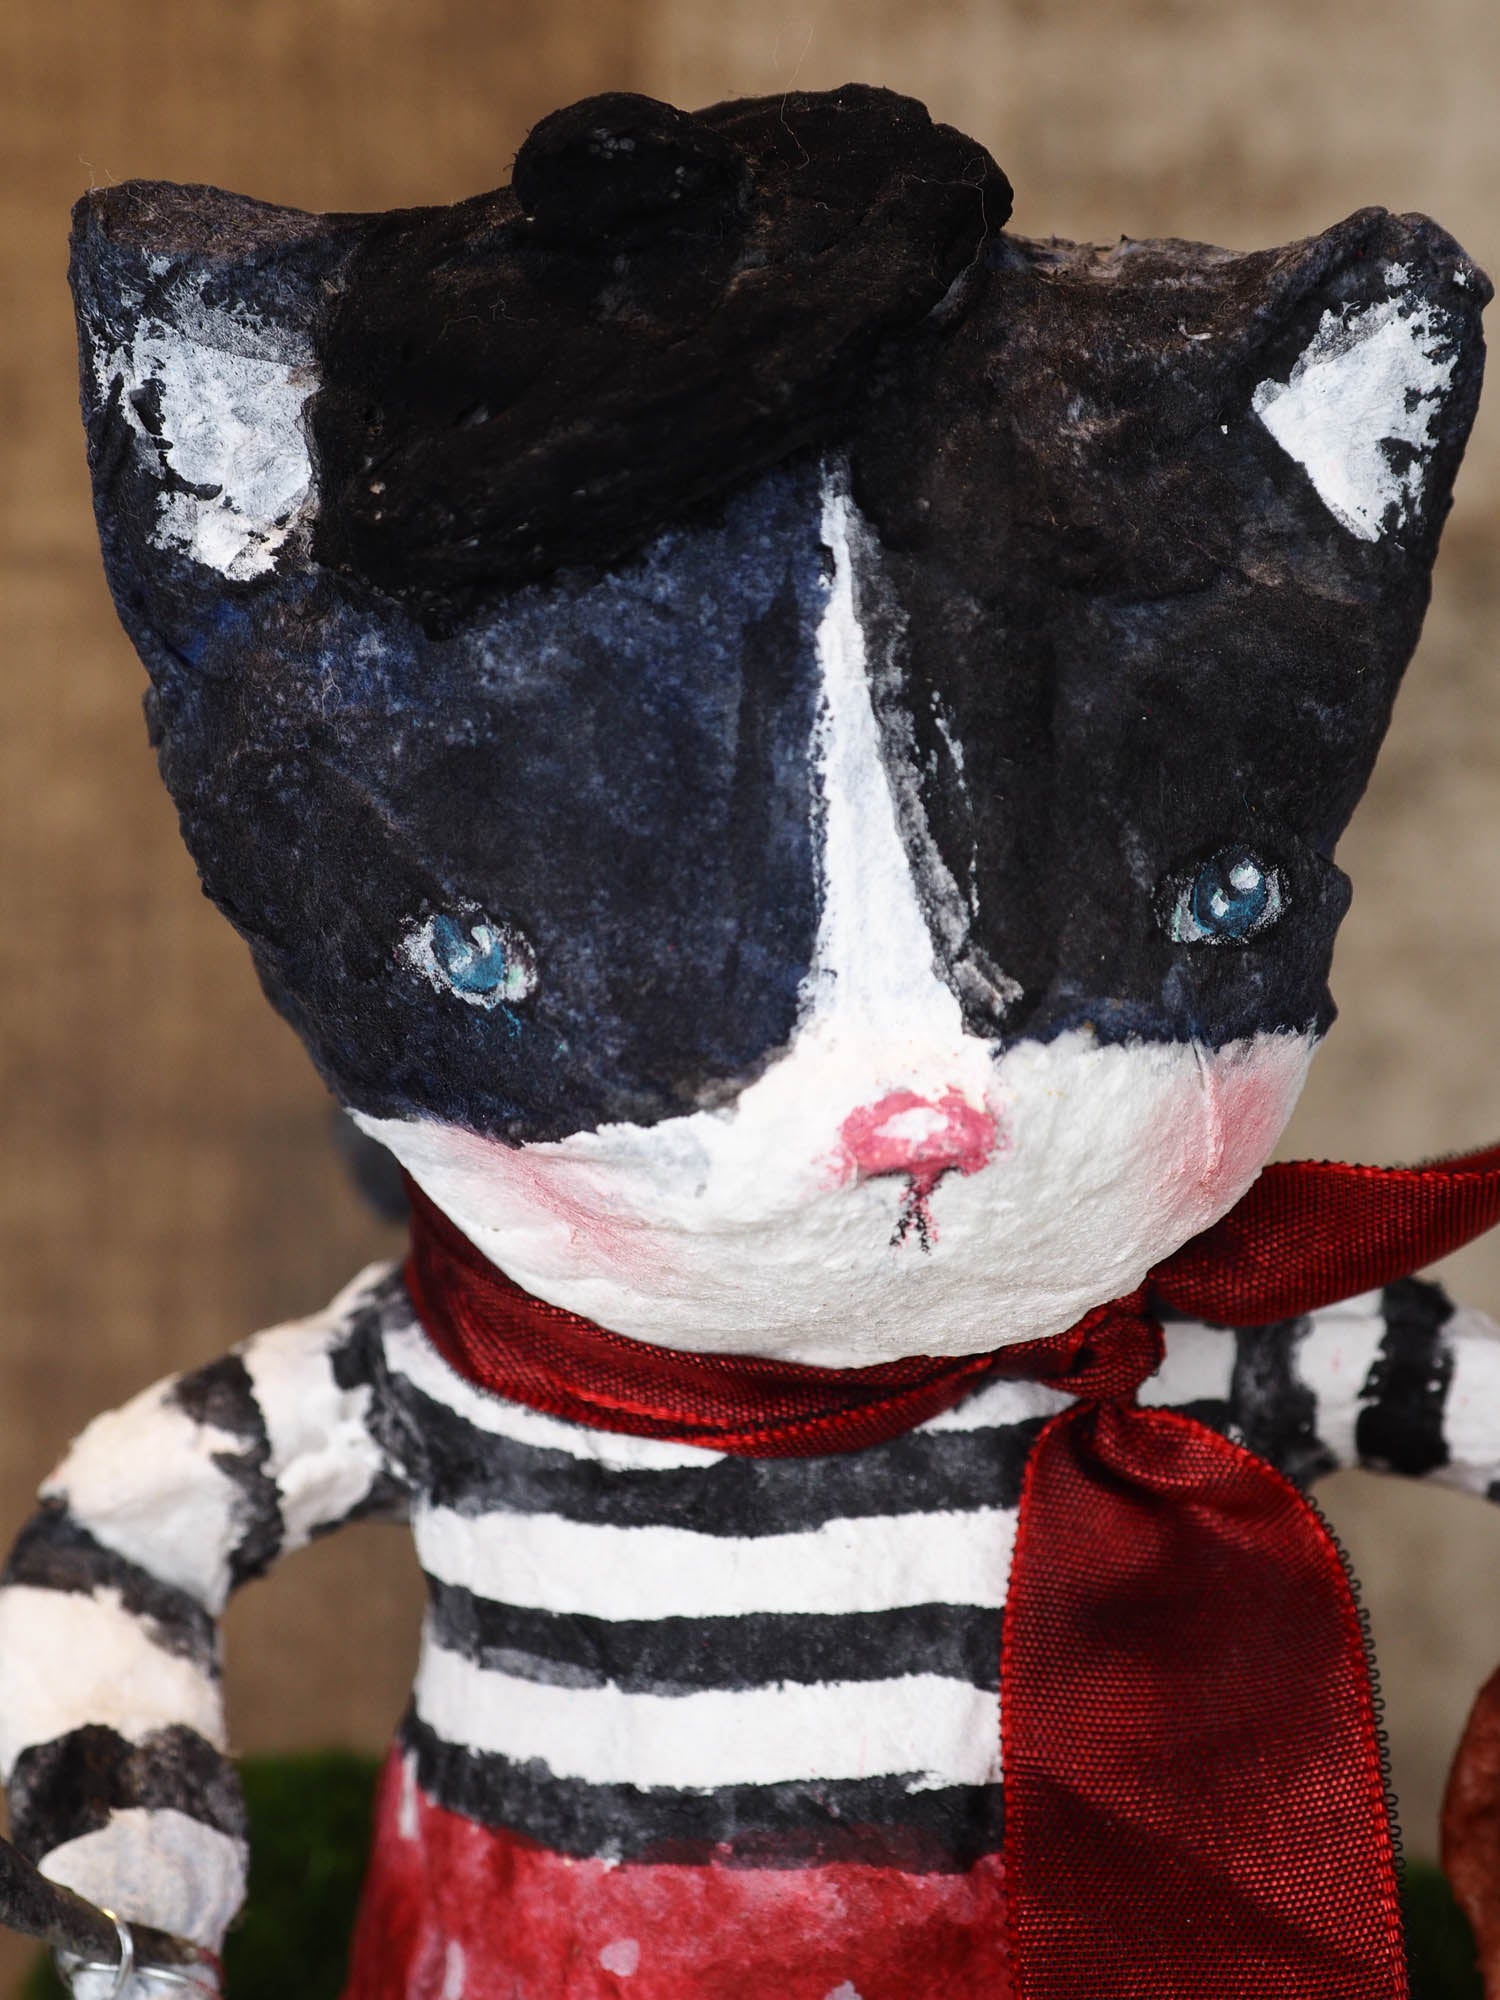 piCATsso - A lovely artist cat doll by Danita, Art Doll by Danita Art